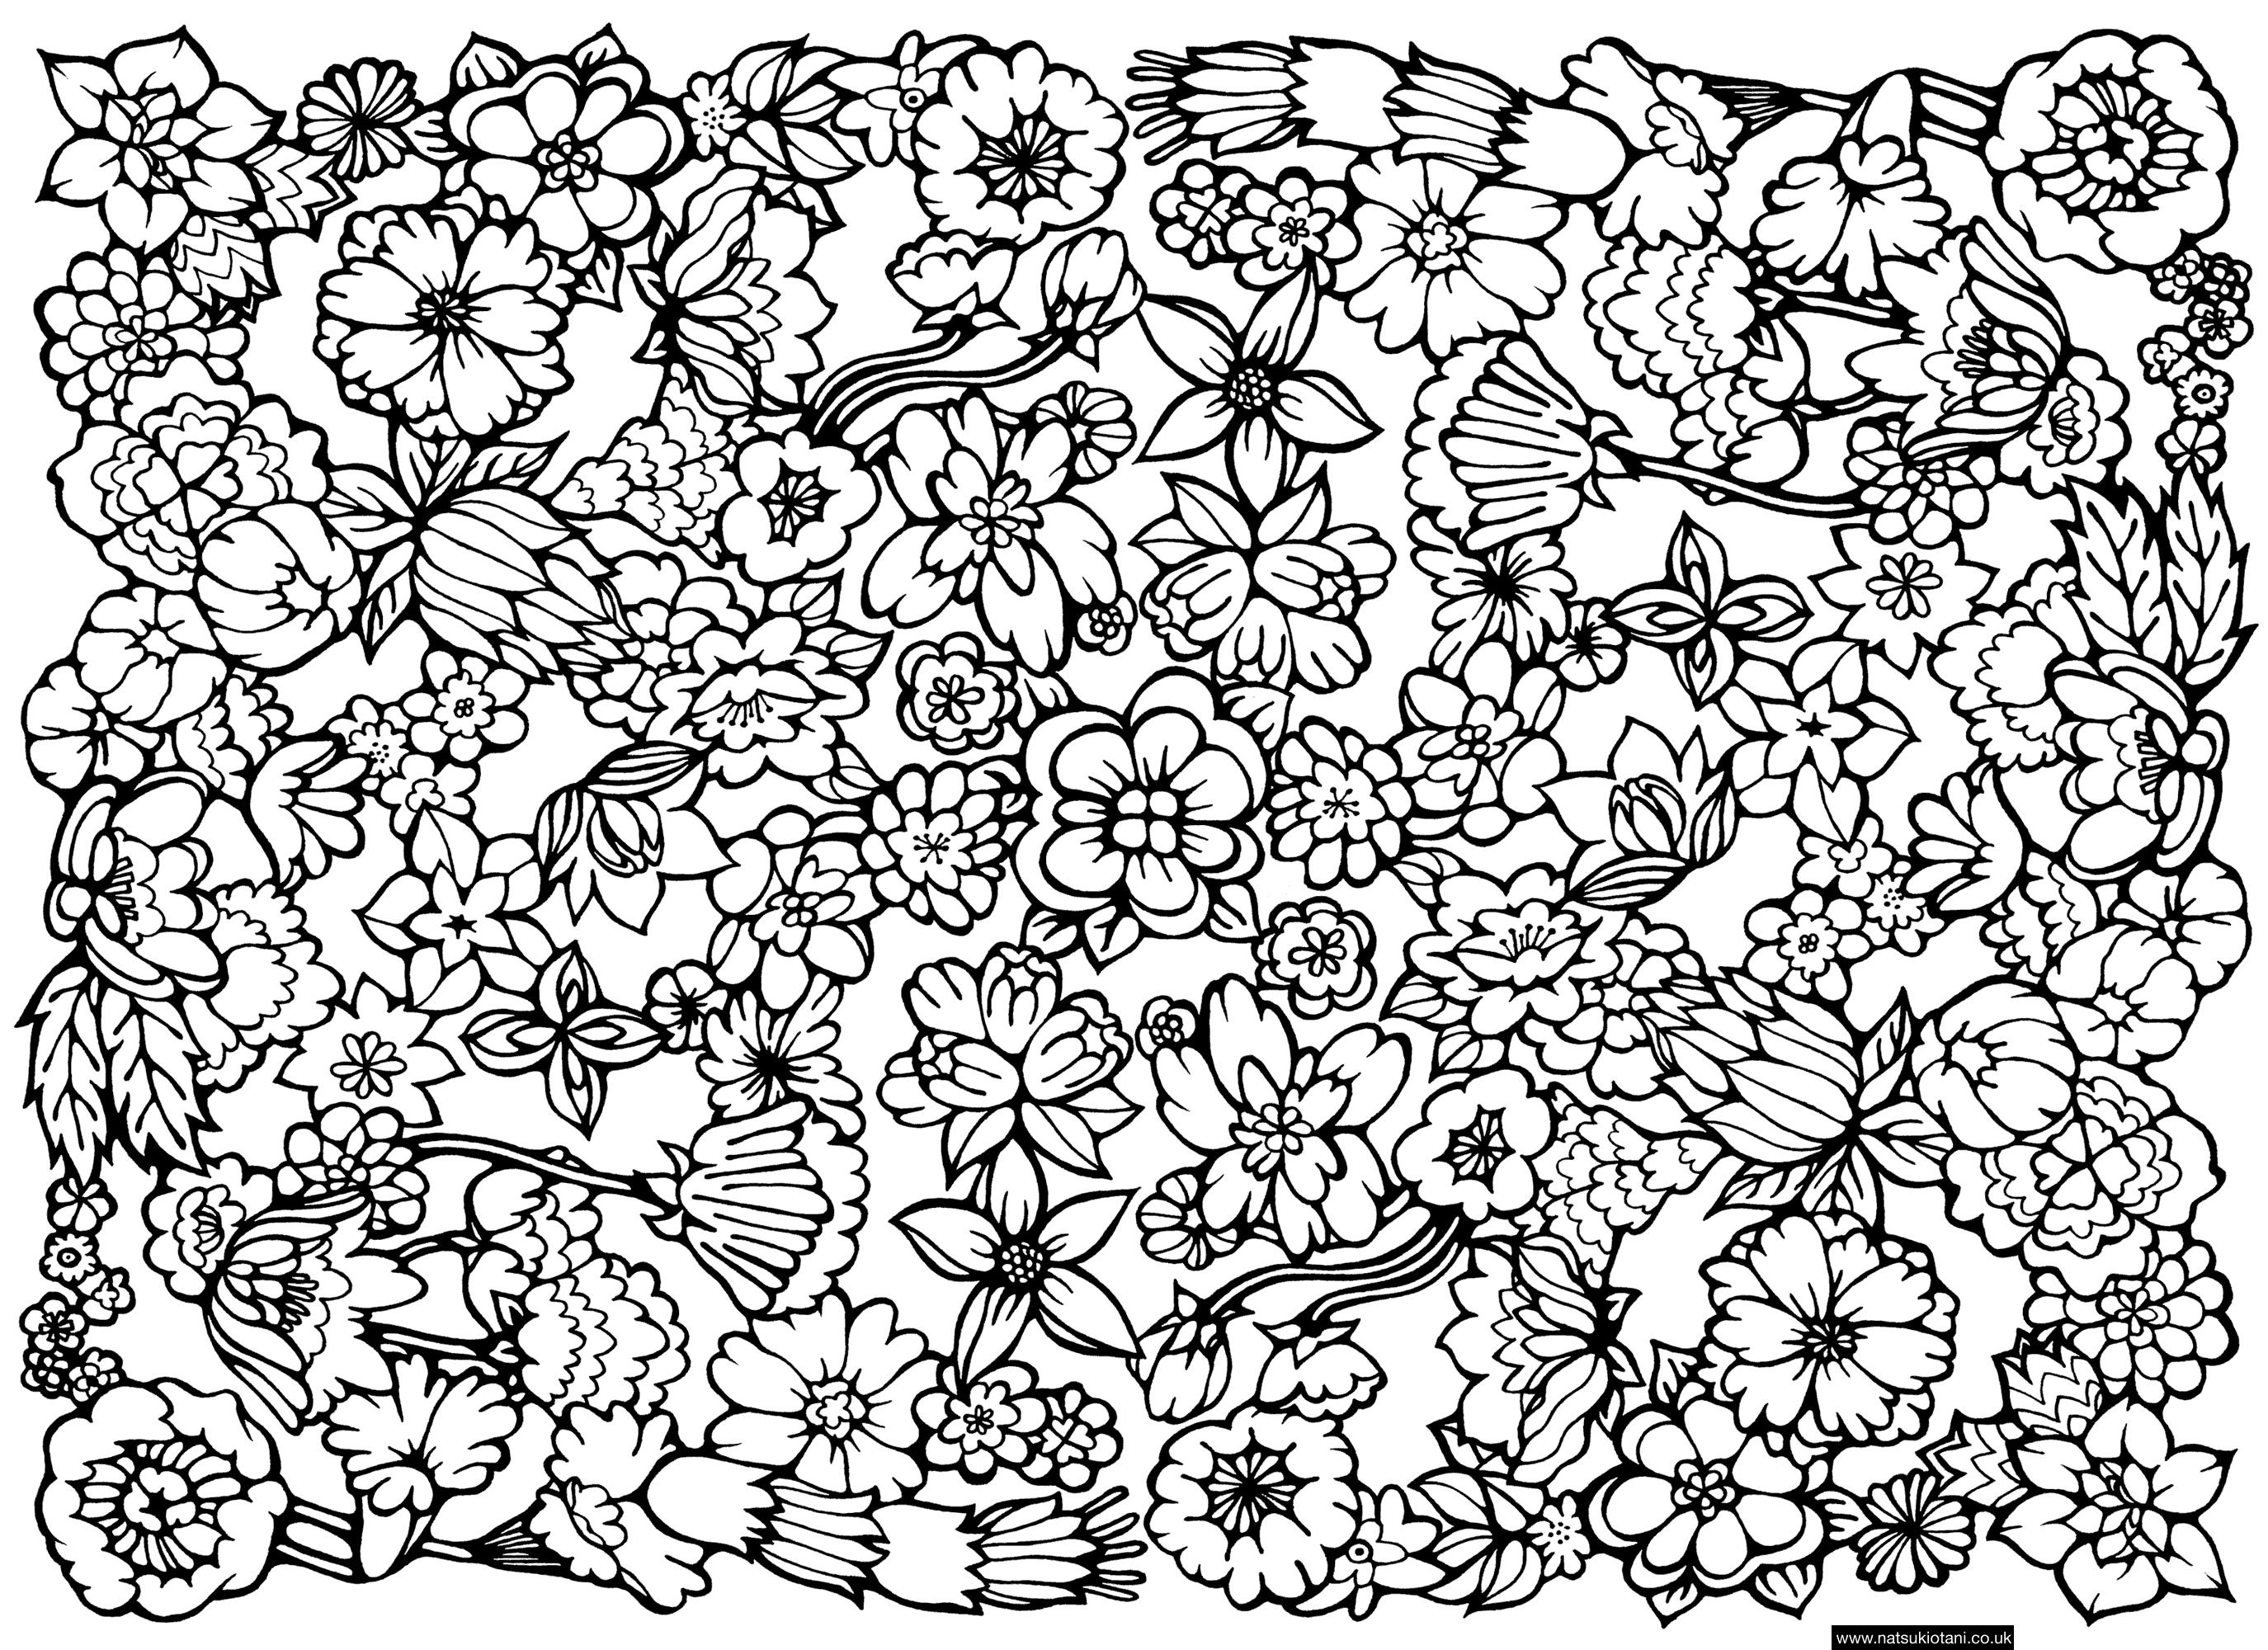 Cool Patterns Coloring Pages Coloring Home